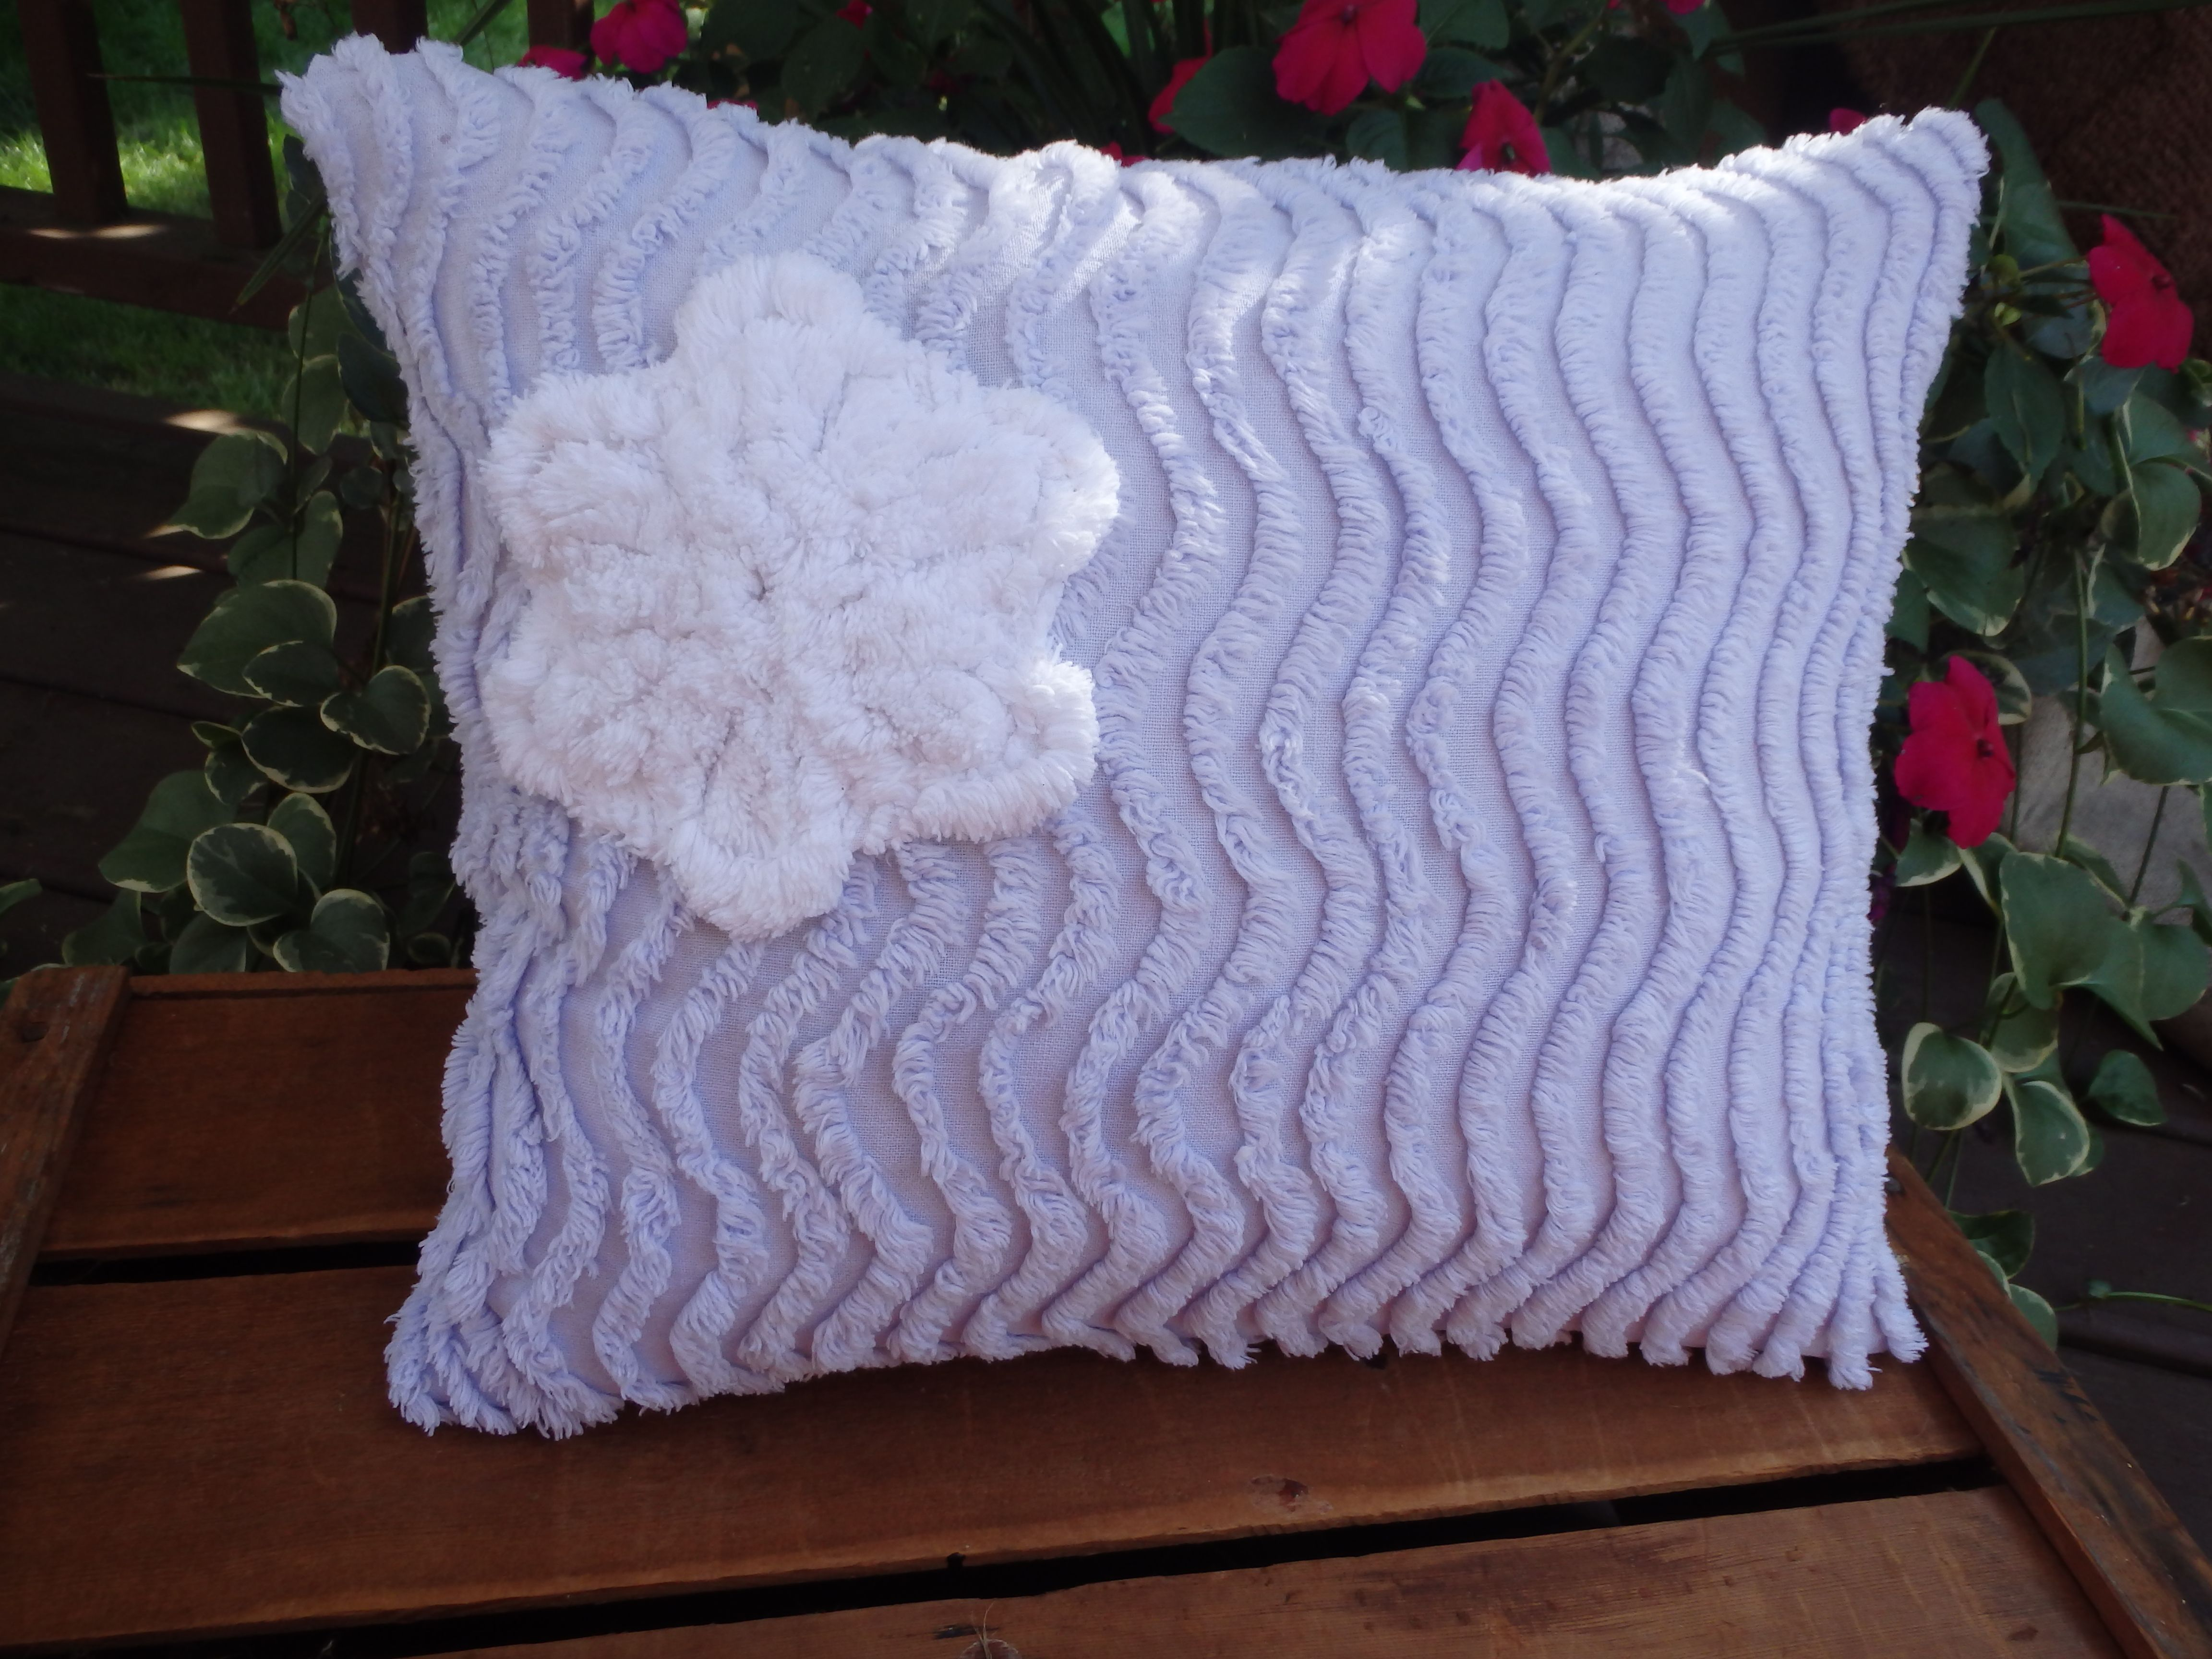 Lavender waves pillow fun lavender chenille with a white chenille